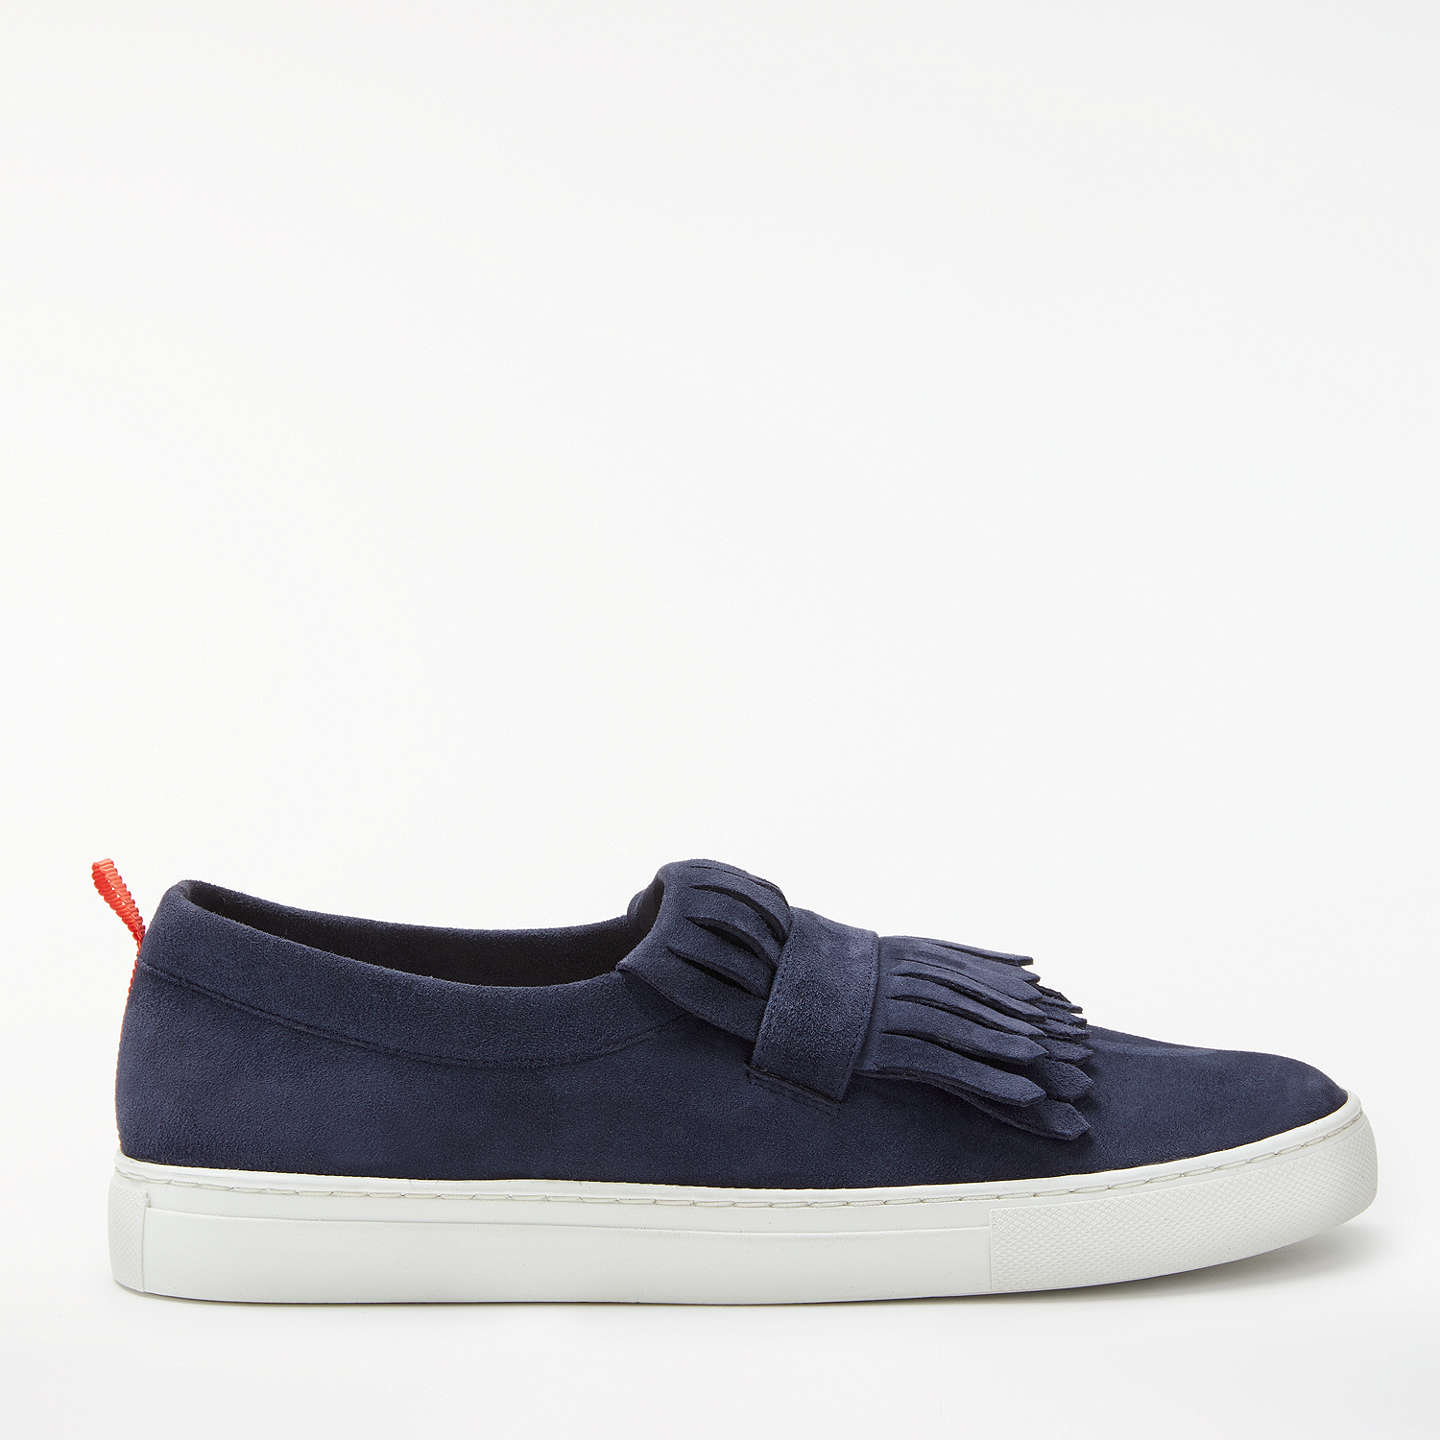 Boden Rayna Fringed Slip On Trainers, Navy Suede by Boden